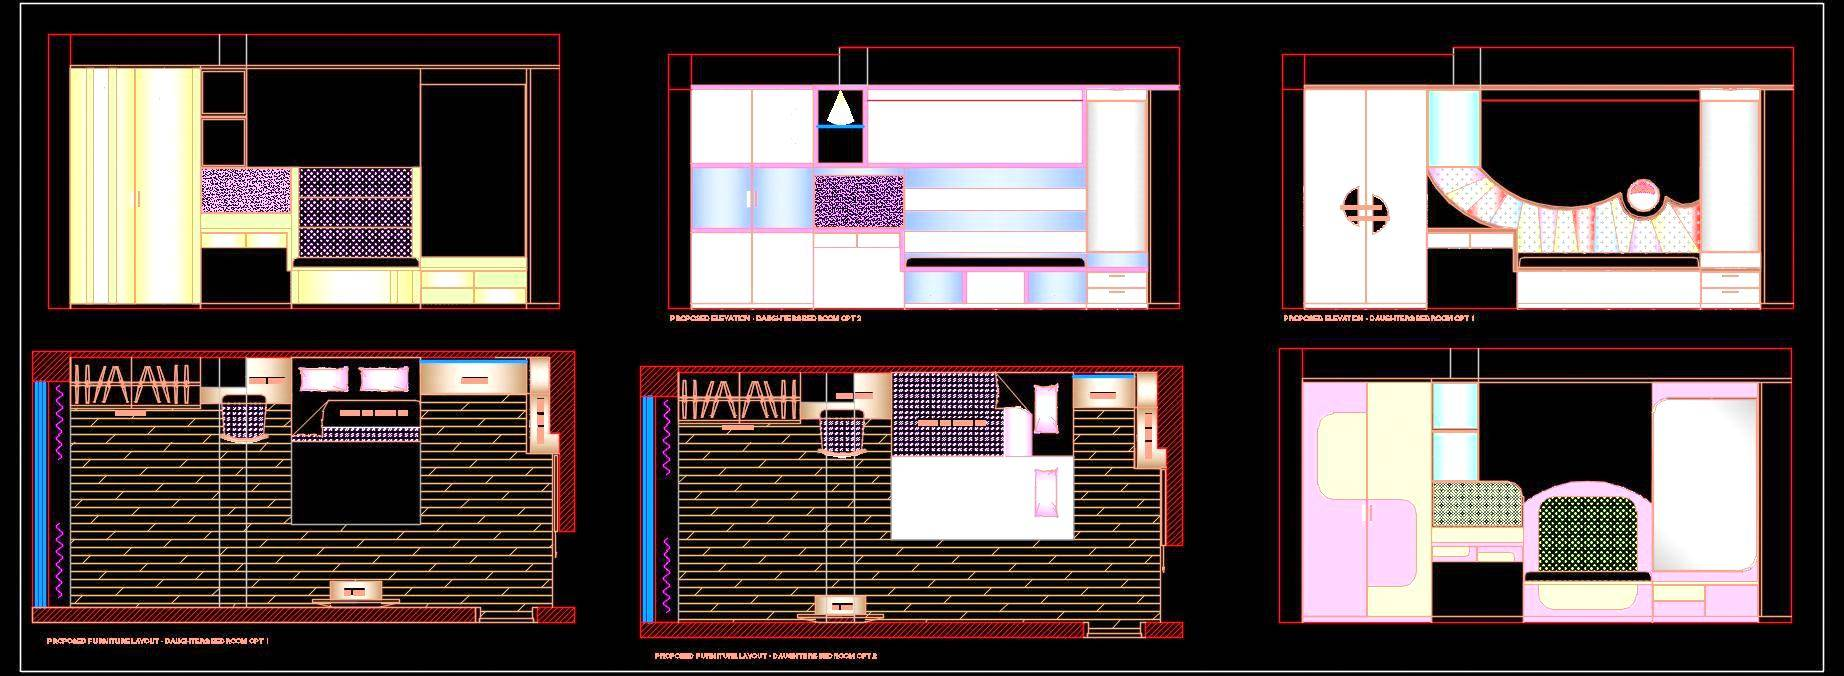 Girl Kid's Bedroom Plan and Interior Elevation DWG Detail